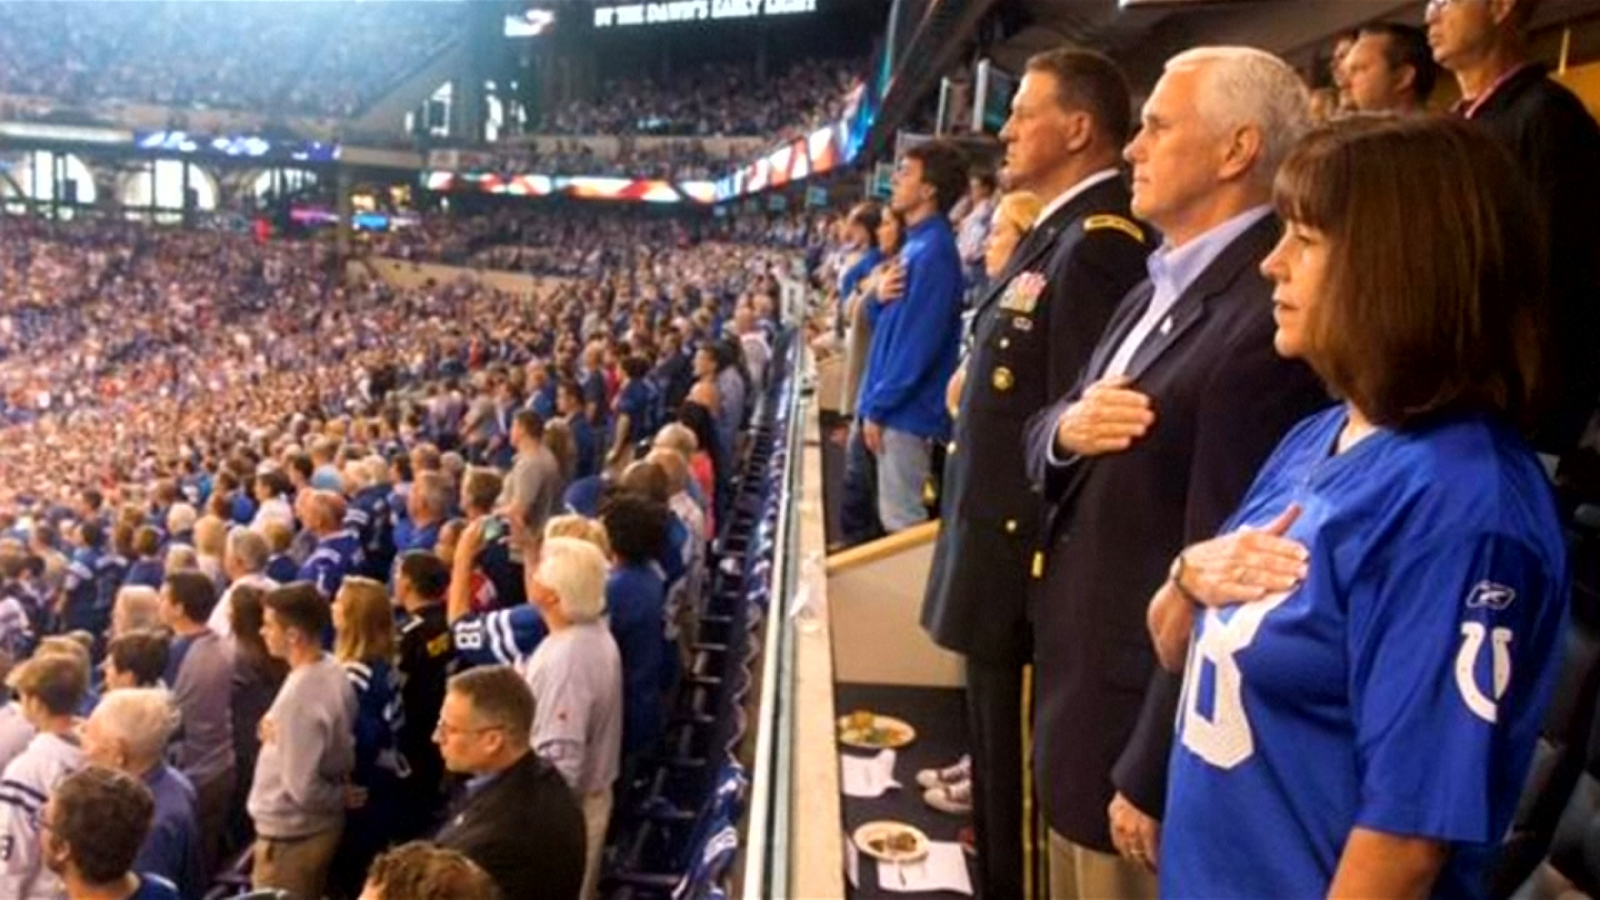 u-s-vice-president-mike-pence-leaves-nfl-game-after-players-kneel-during-national-anthem